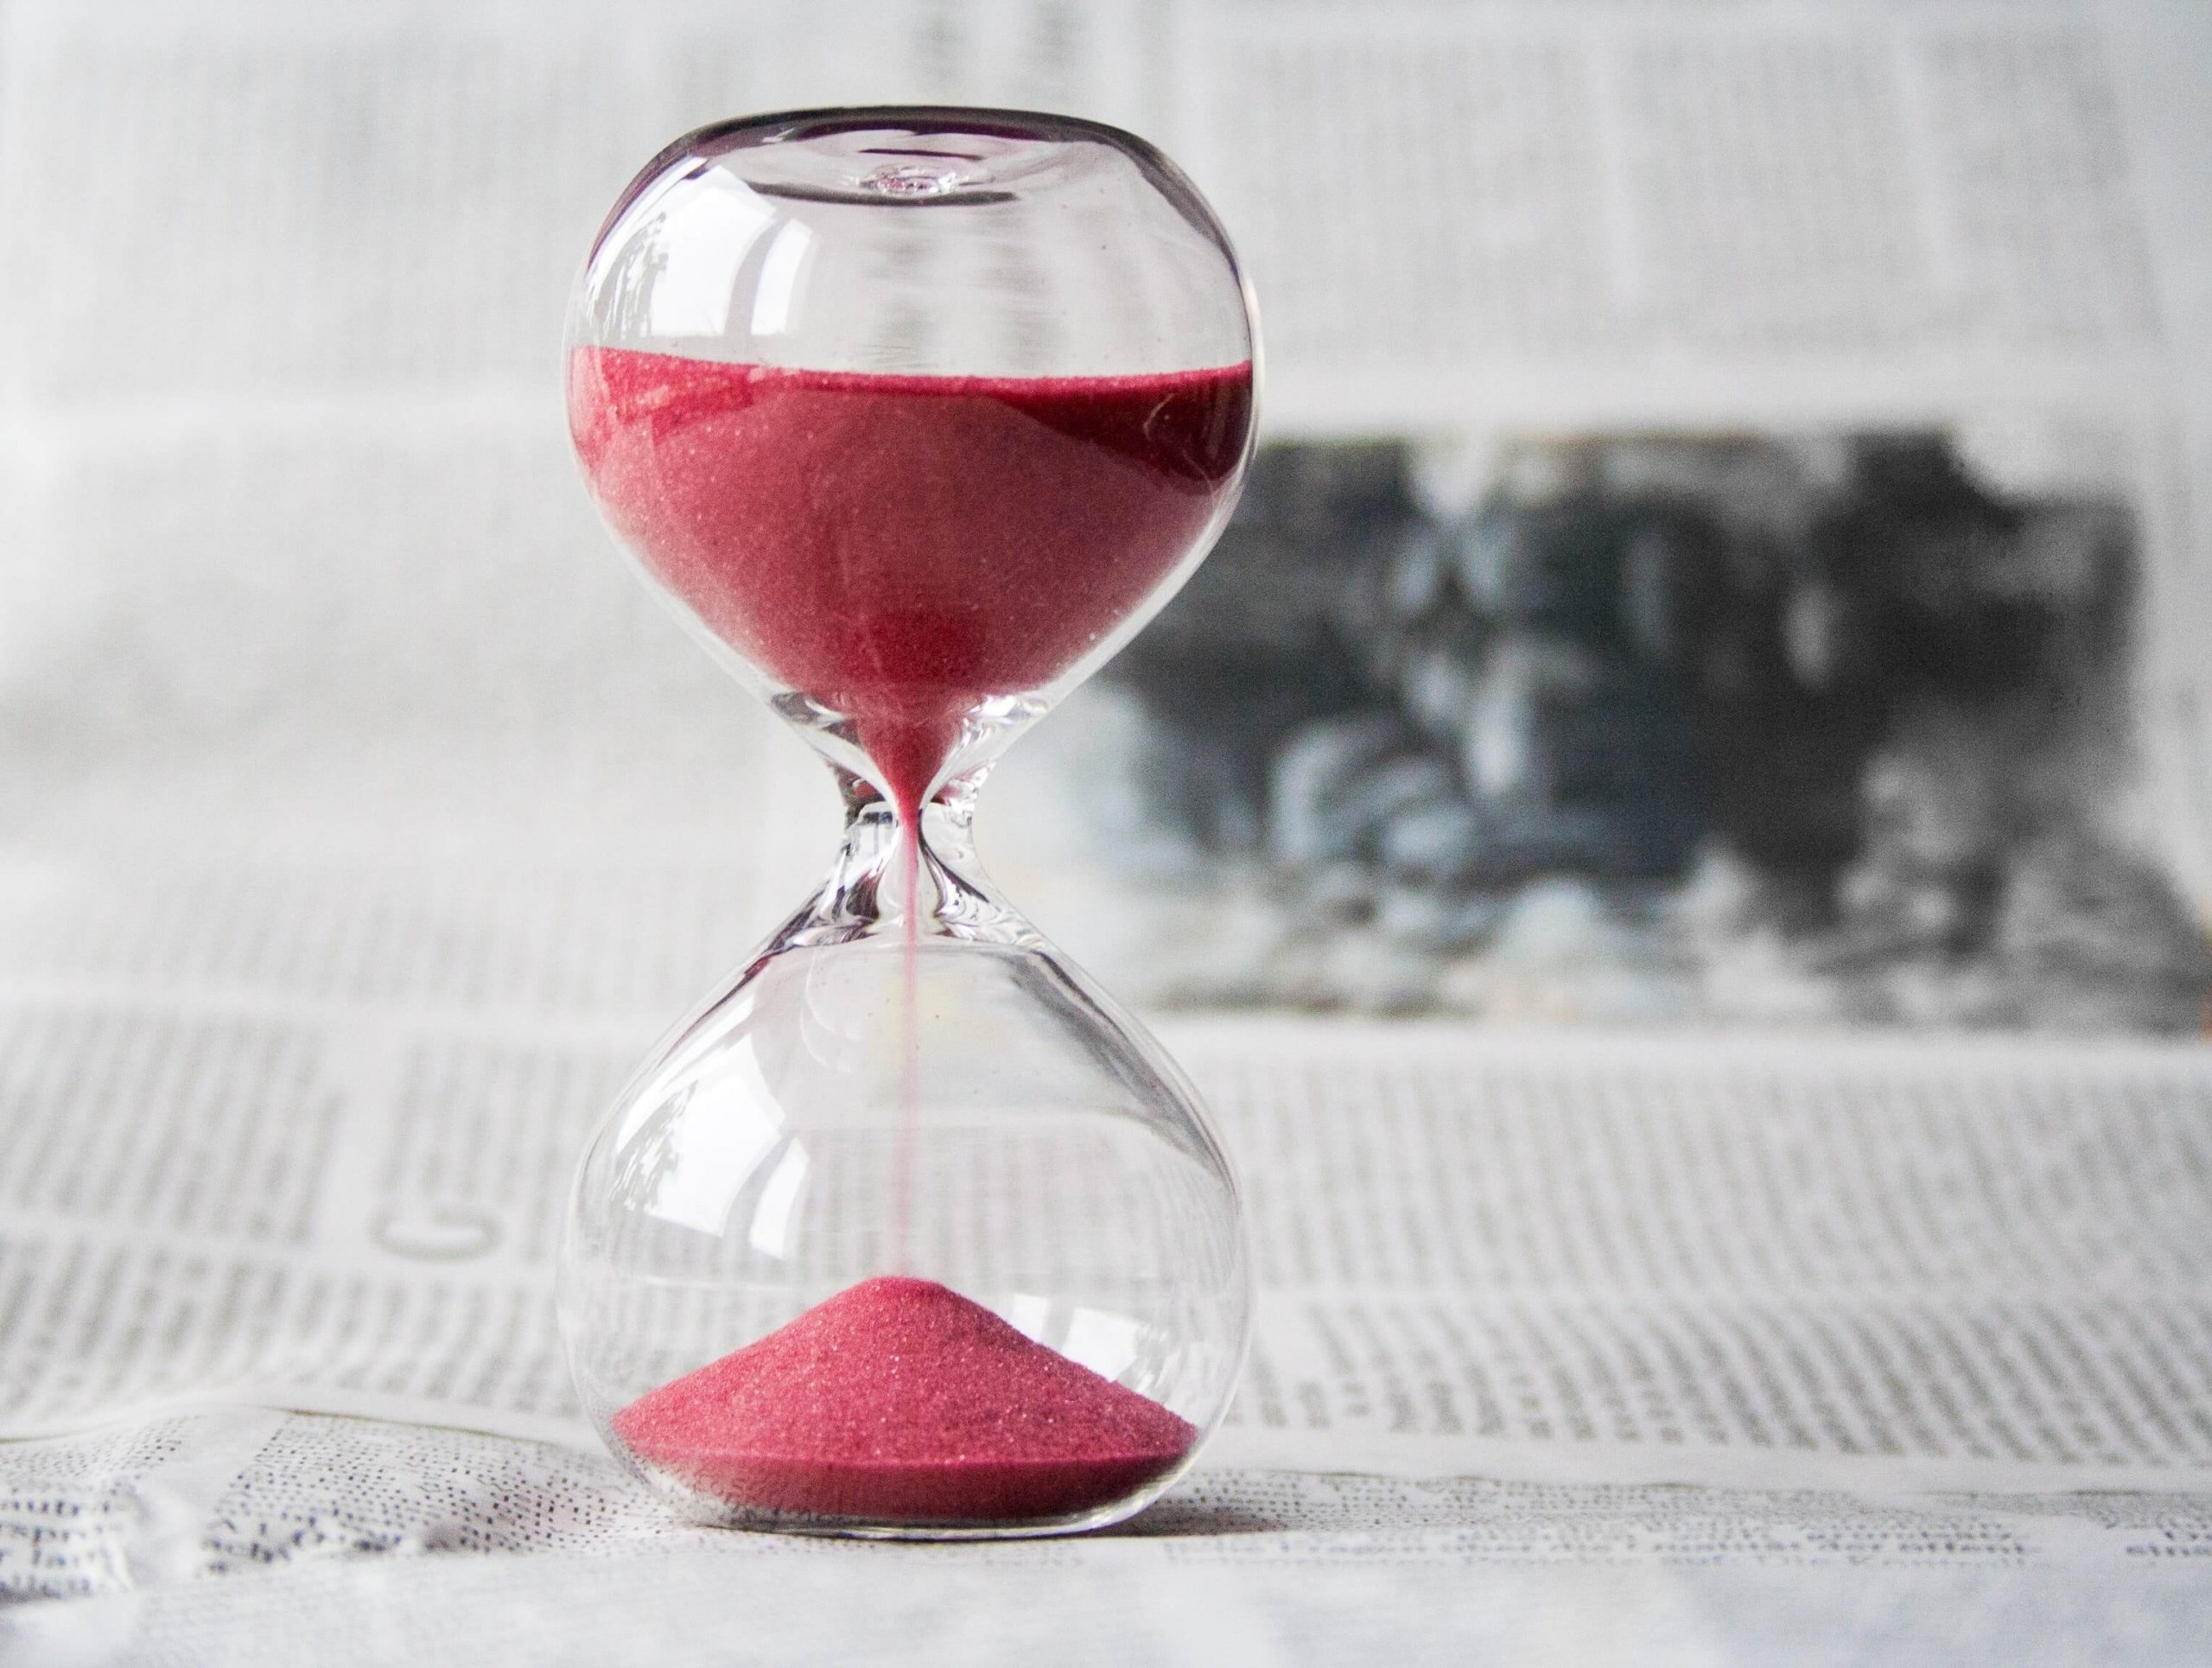 Egg timer with red sand